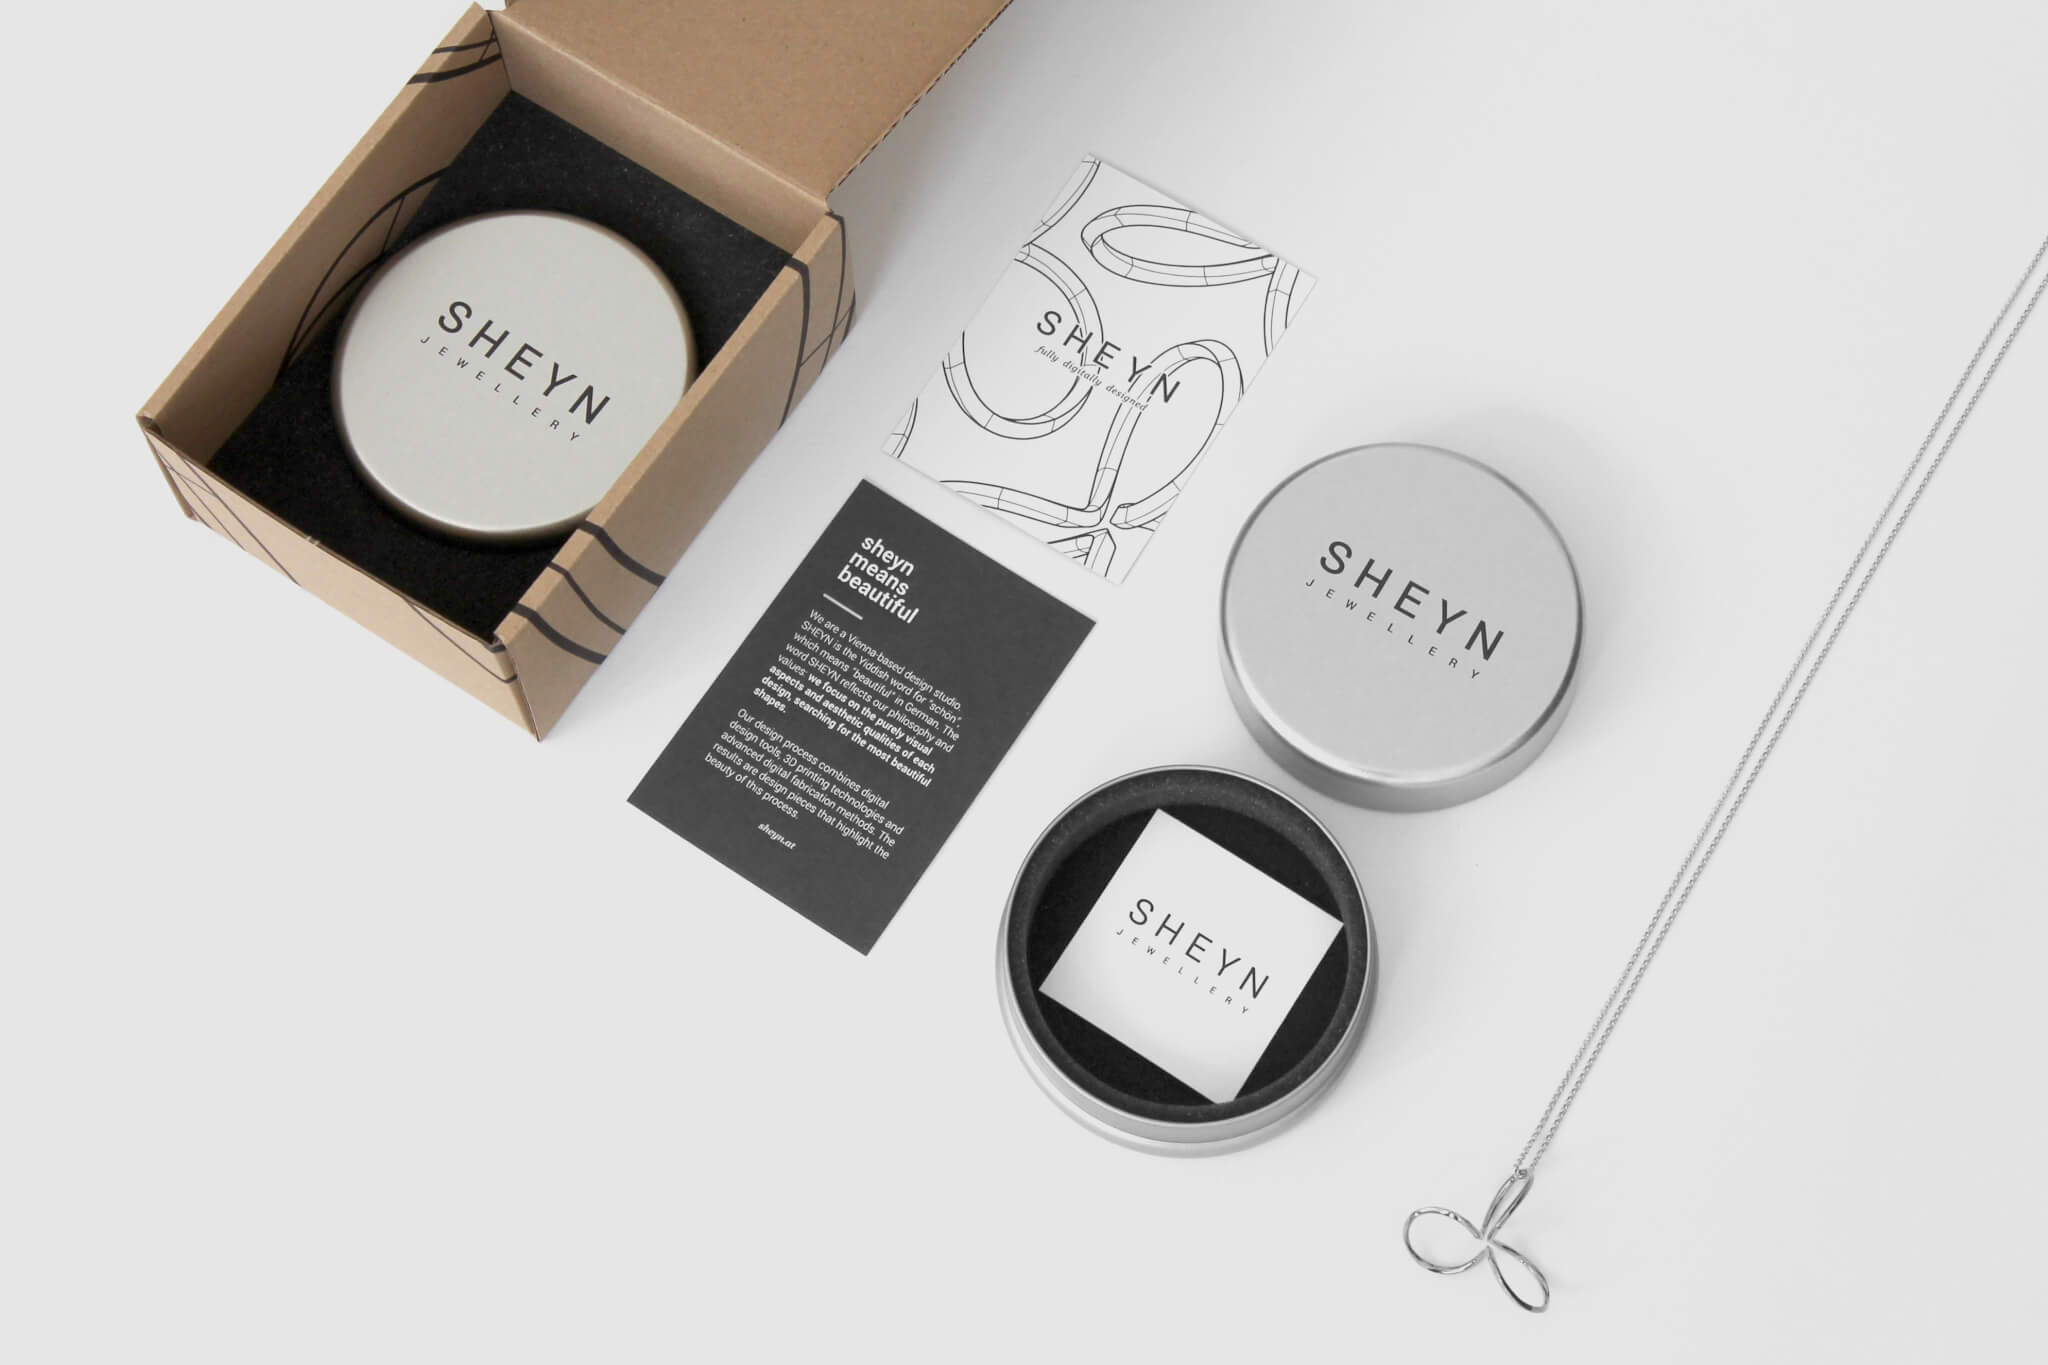 SHEYN packaging design